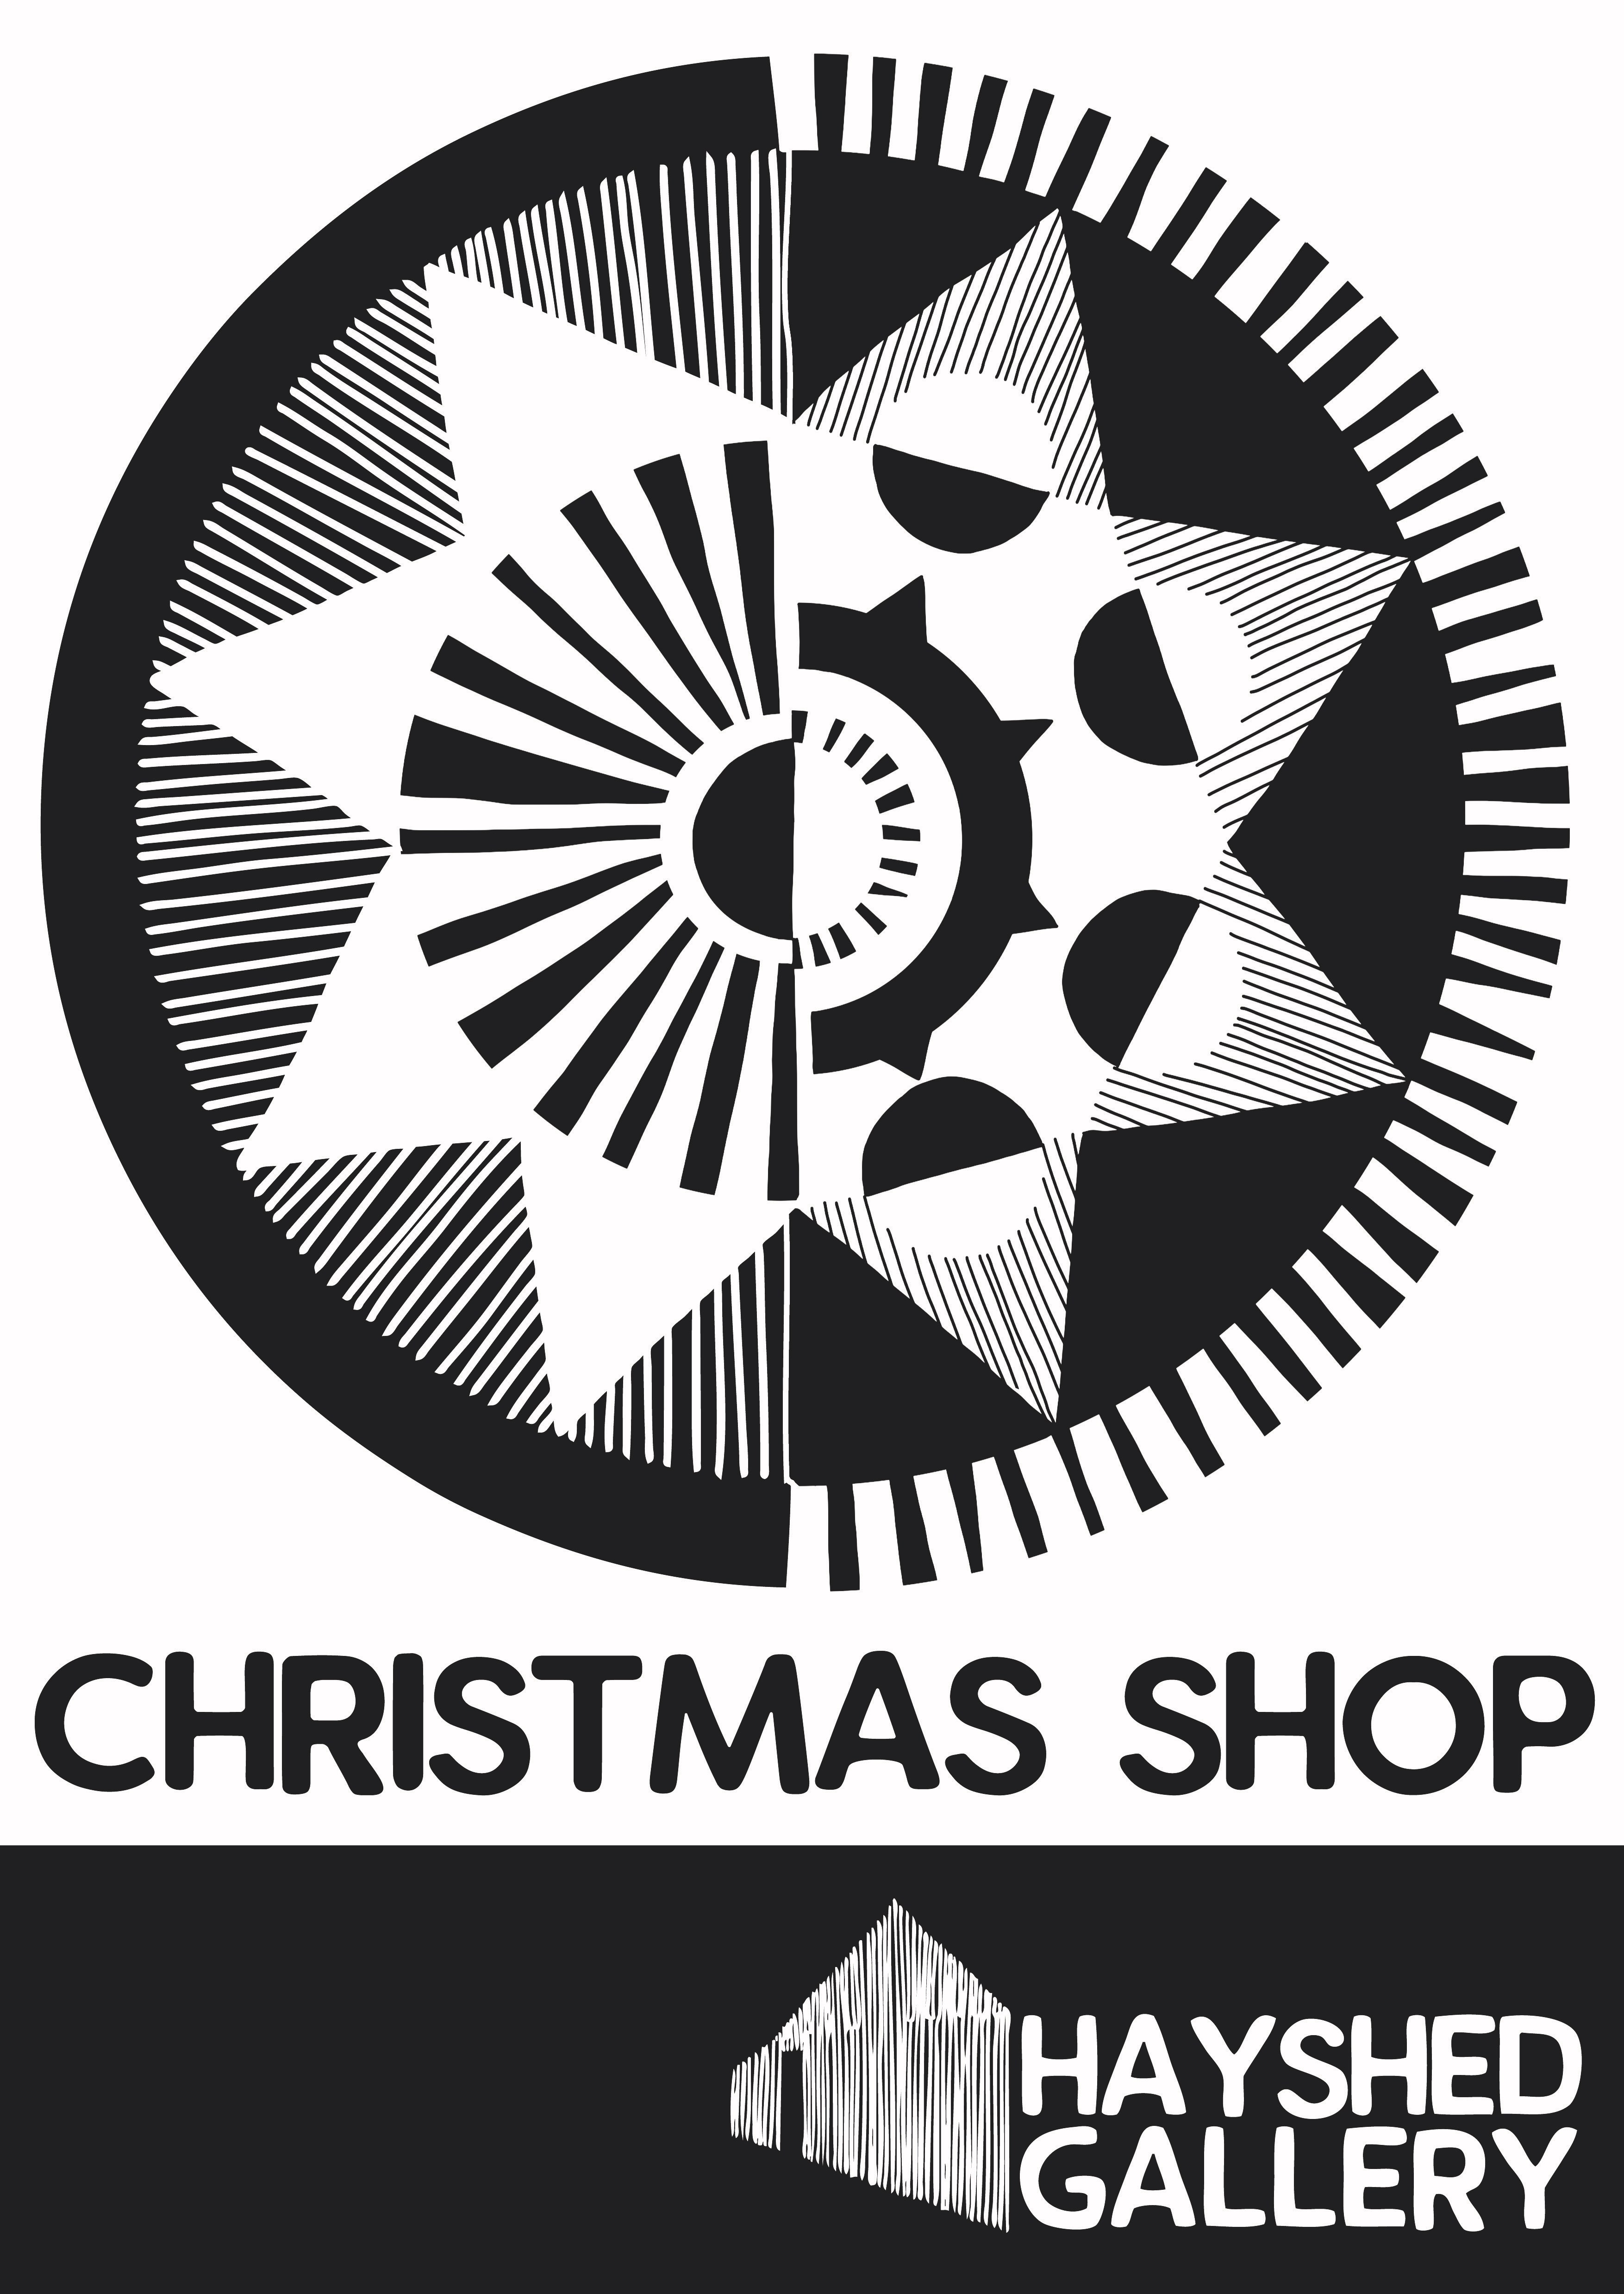 Hayshed Gallery Christmas Pop-up Shop